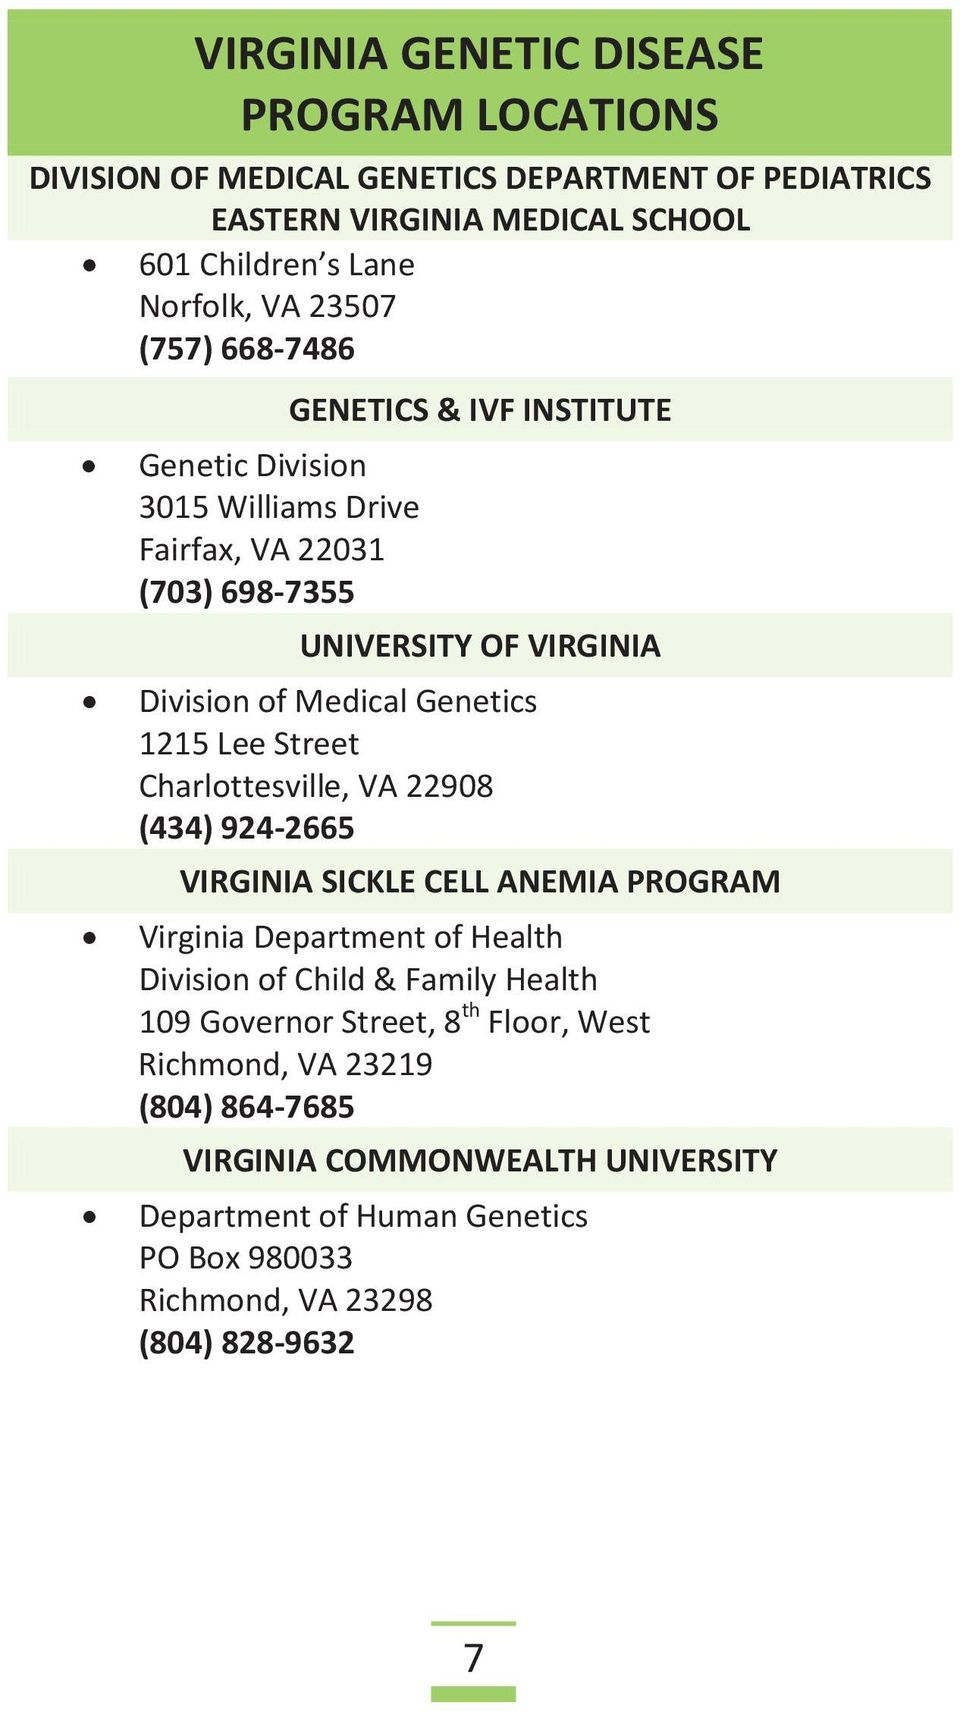 Lee Street Charlottesville, VA 22908 (434) 924-2665 VIRGINIA SICKLE CELL ANEMIA PROGRAM Virginia Department of Health Division of Child & Family Health 109 Governor